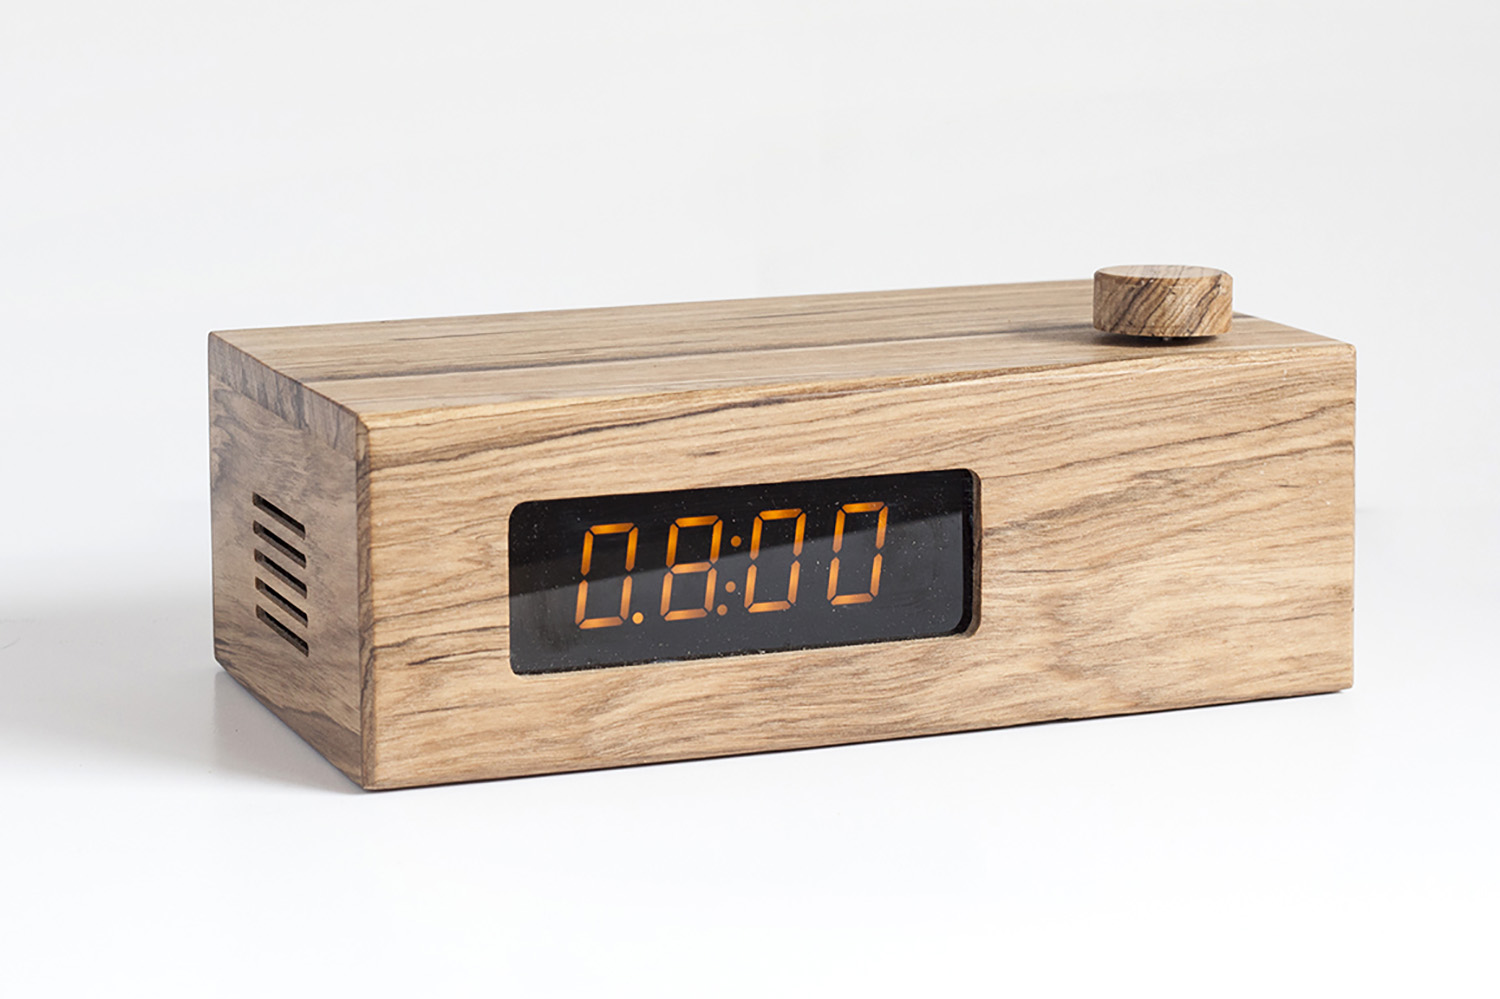 The Shibby Rise makes waking up so much prettier.  The timeless design and authentic wood feel makes it the perfect piece for any stylish space.    Features:   LED clock display Built in cellphone charger SD memory card slot Latest Bluetooth technology, 10m range Aux port Size: 21cm x 12cm x 6cm     Accessories:   1x micro USB charging cable 1x aux cable 1x USB charging adapter